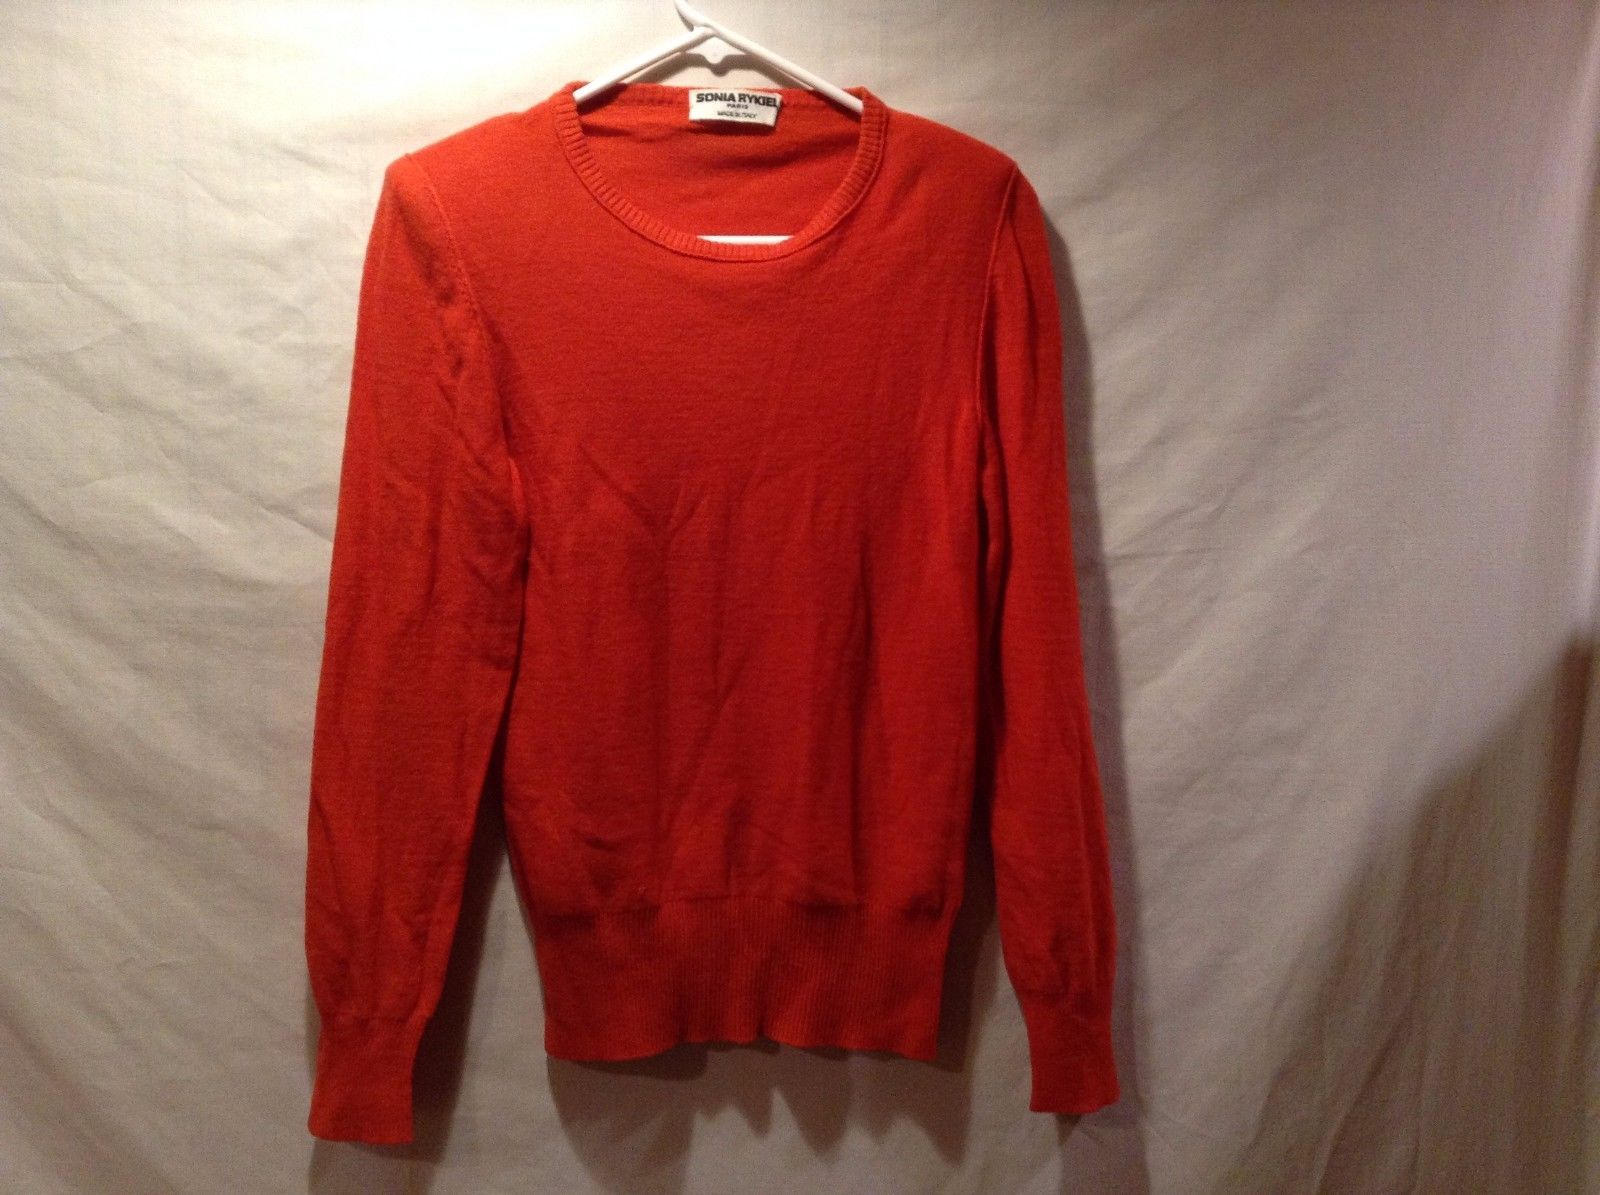 Sonia Rykiel Paris Cute Red Sweater w Shoulder Pads Sz 36